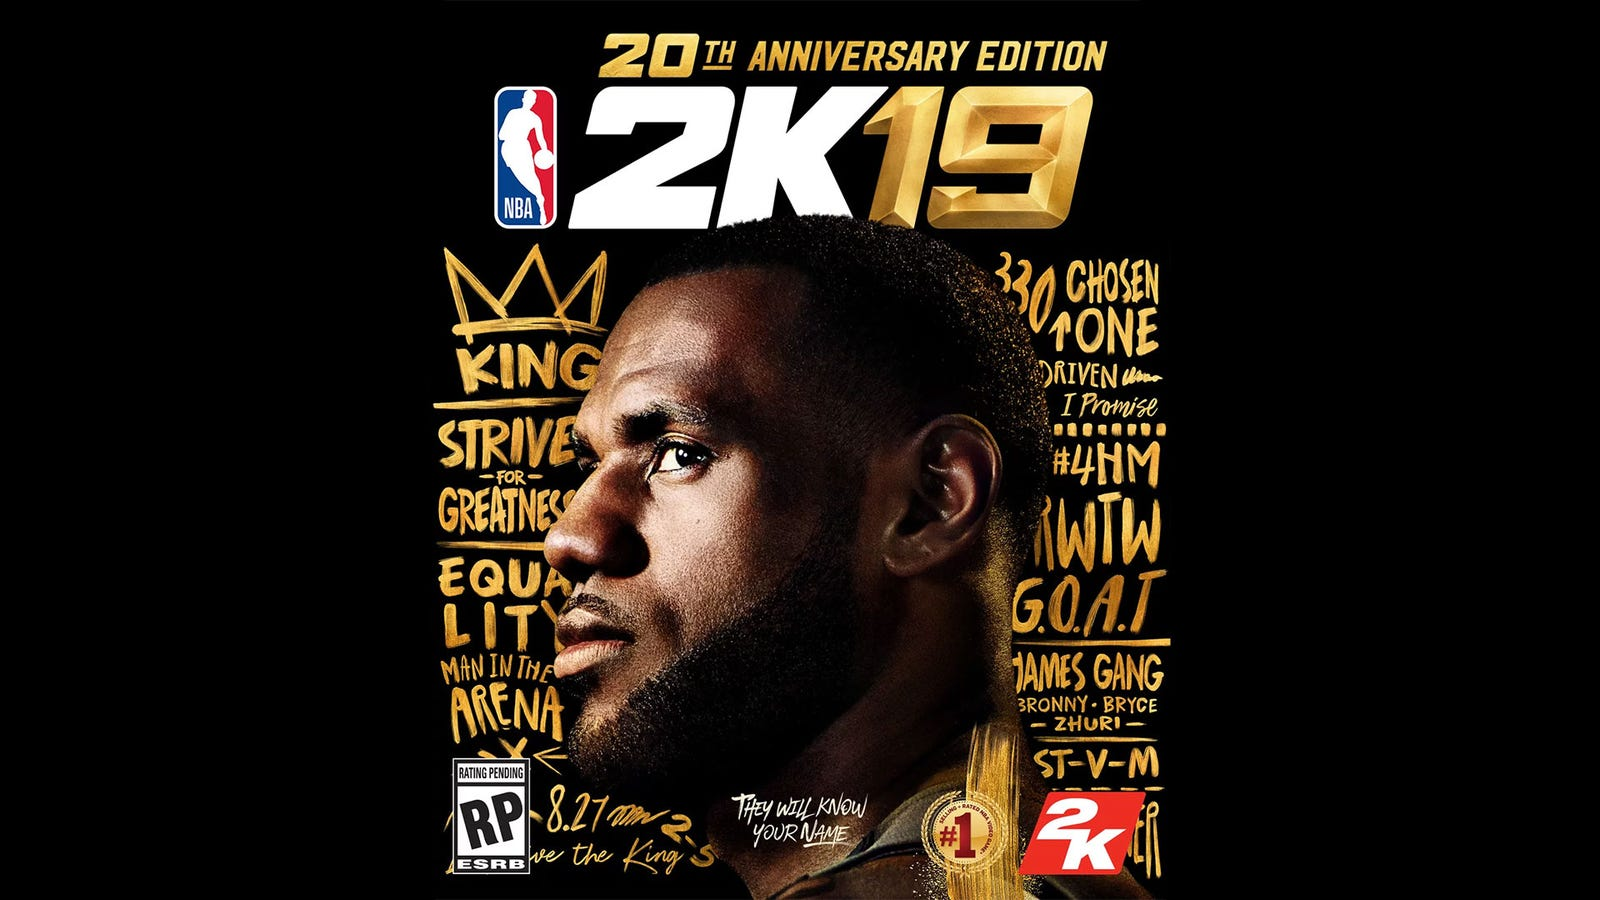 Dope Nba 2k19 Background: LeBron James Is NBA 2K19's Cover Star